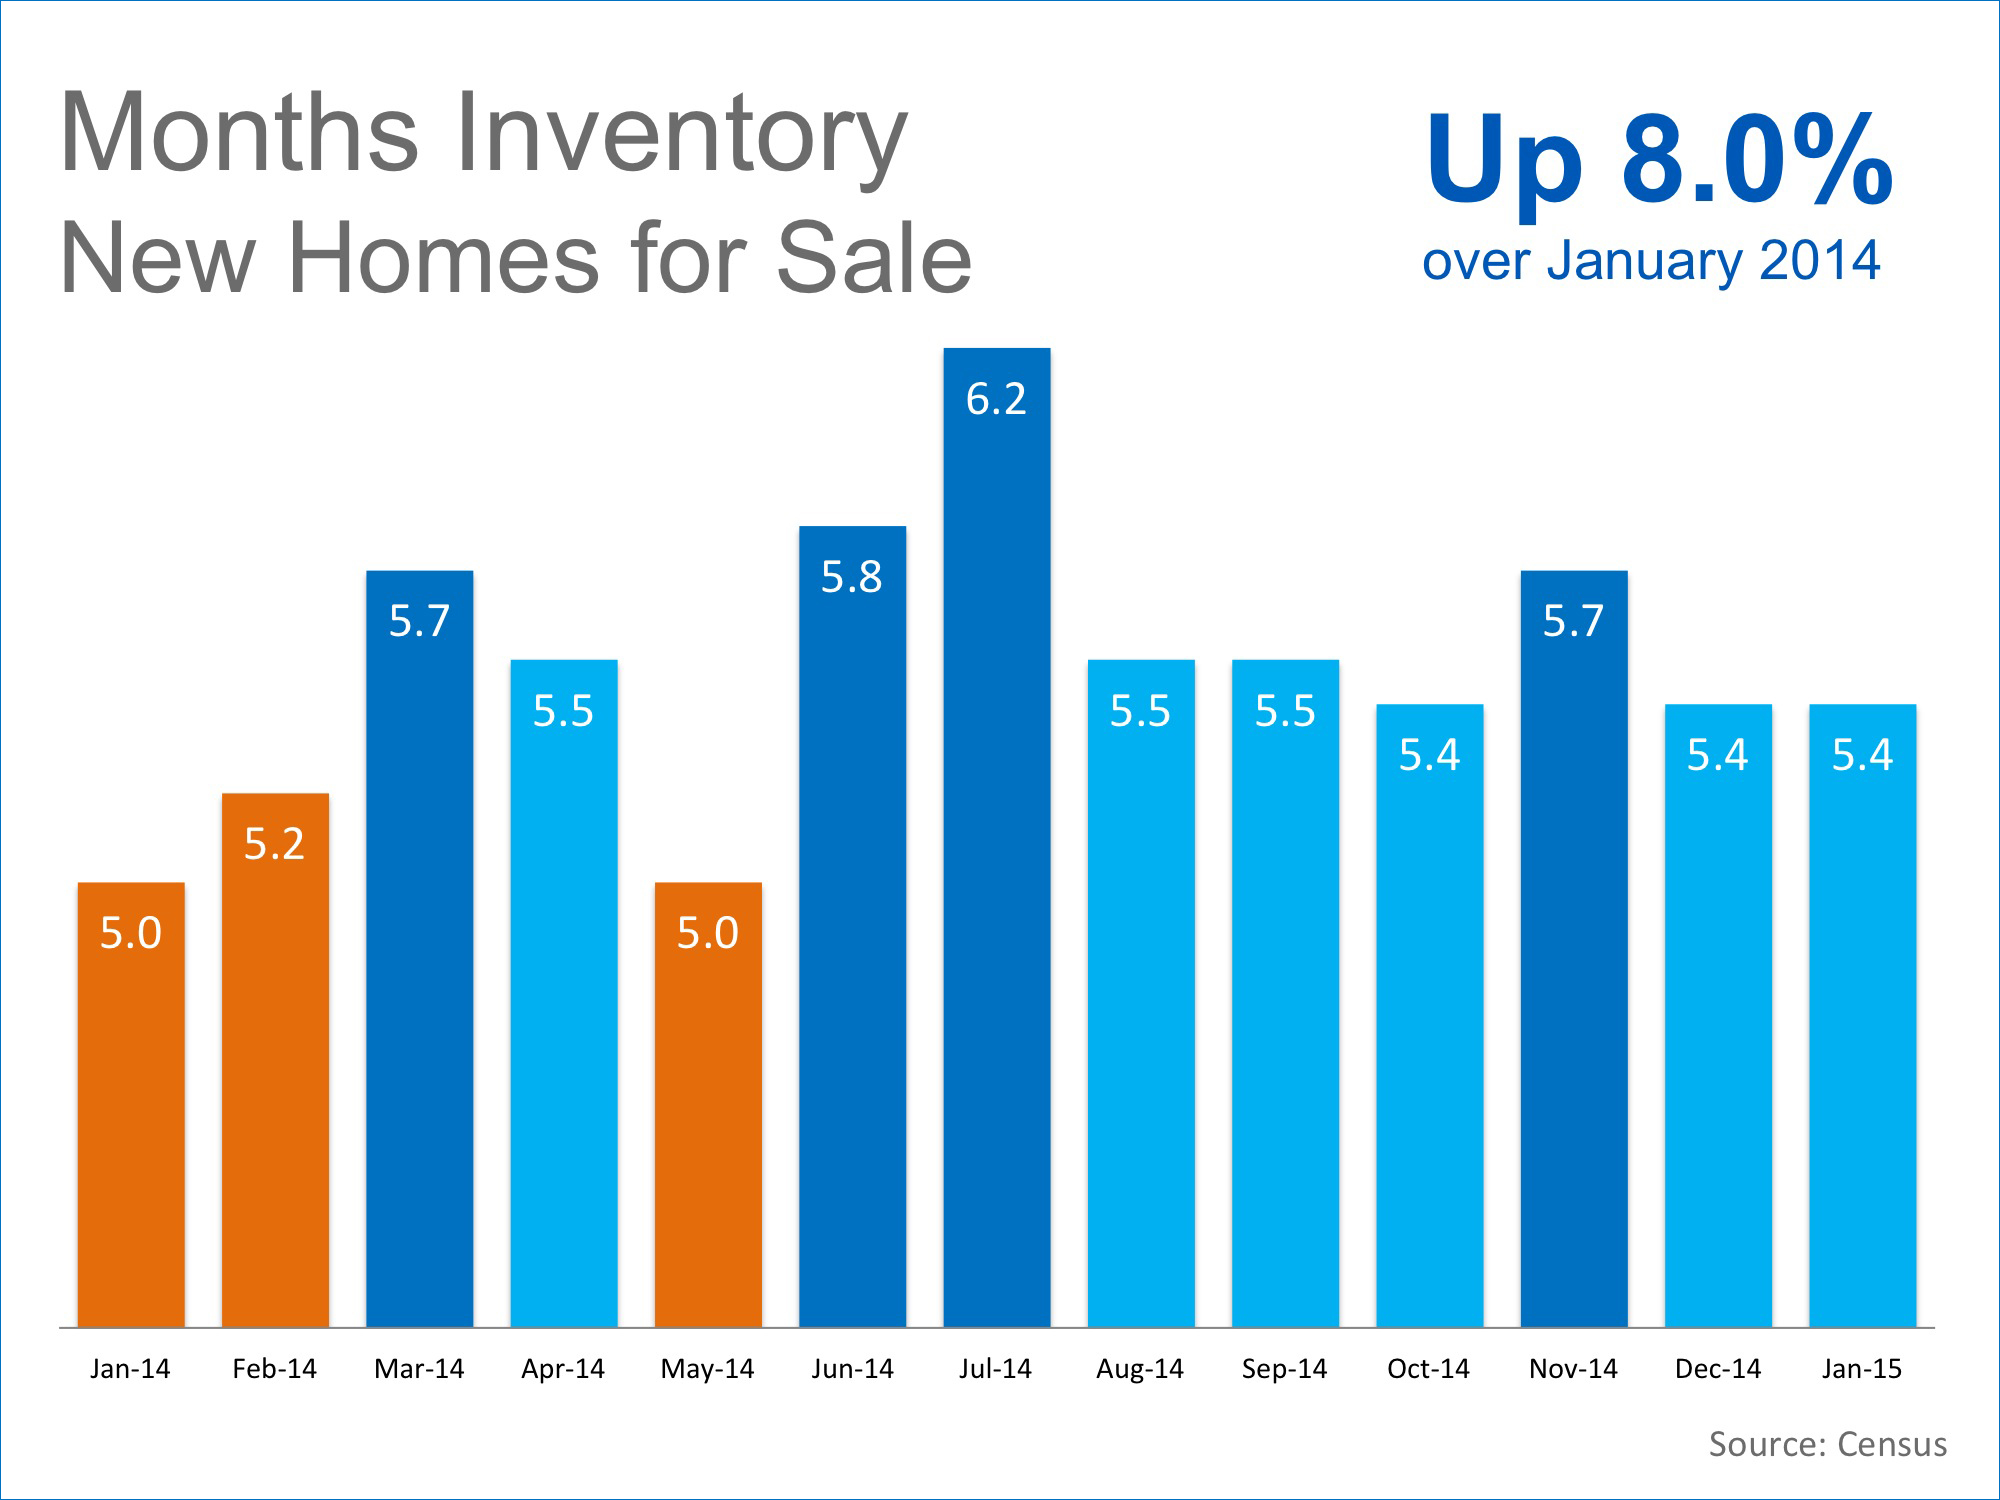 Months Inventory New Homes for Sale | Keeping Current Matters